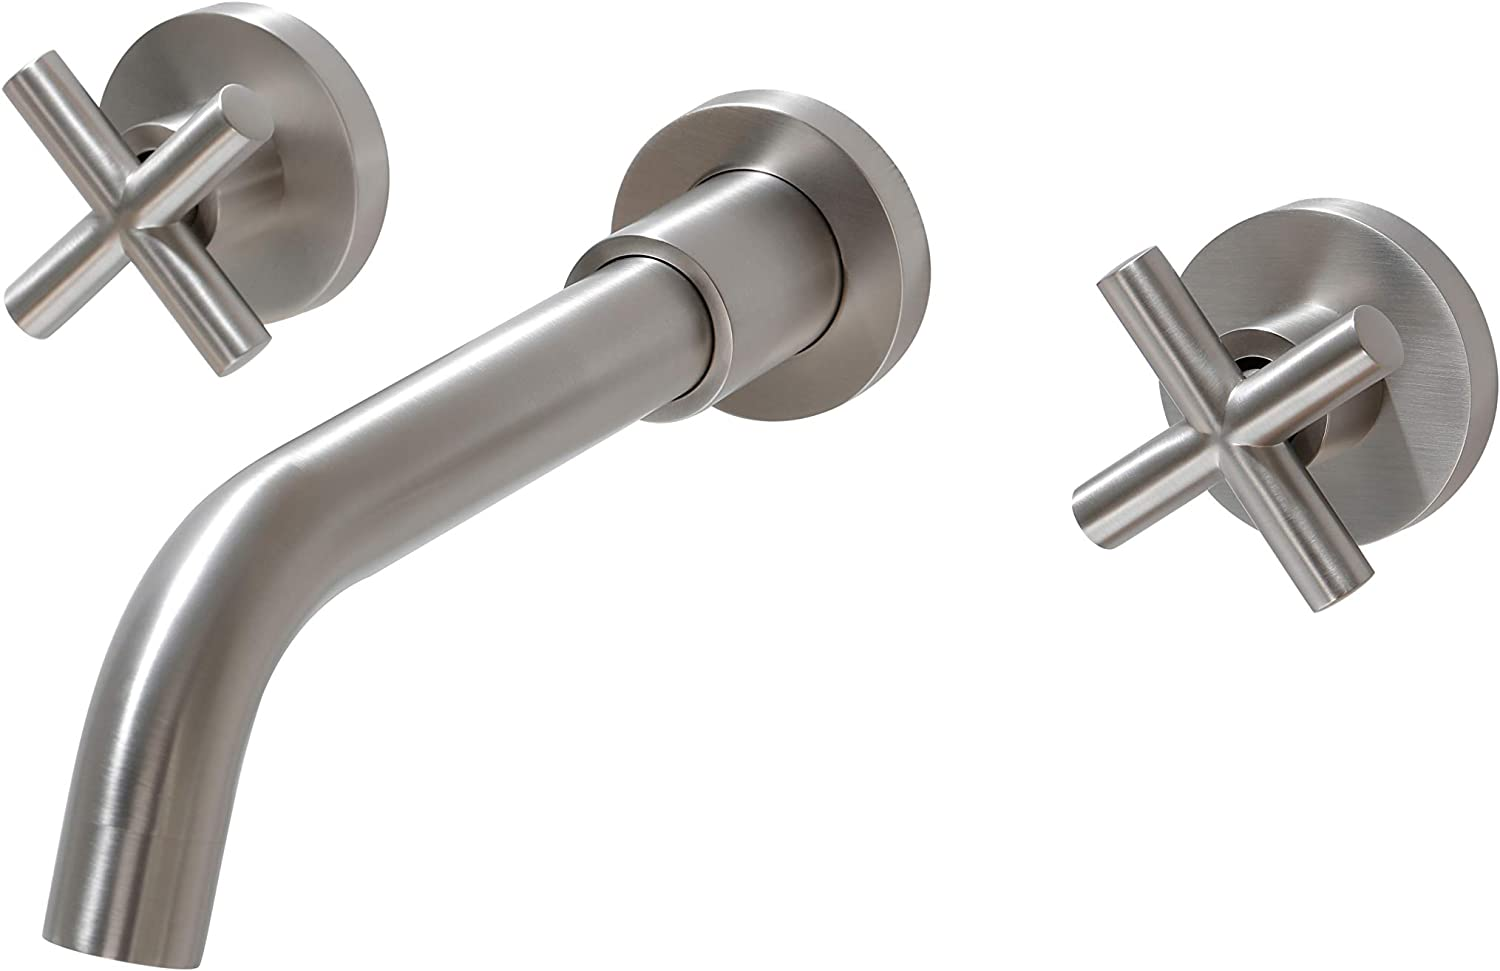 SITGES Brushed Nickel Bathroom Faucet, Double Handle Wall Mount Bathroom Sink Faucet and Rough in Valve Included (Brushed Nickel)